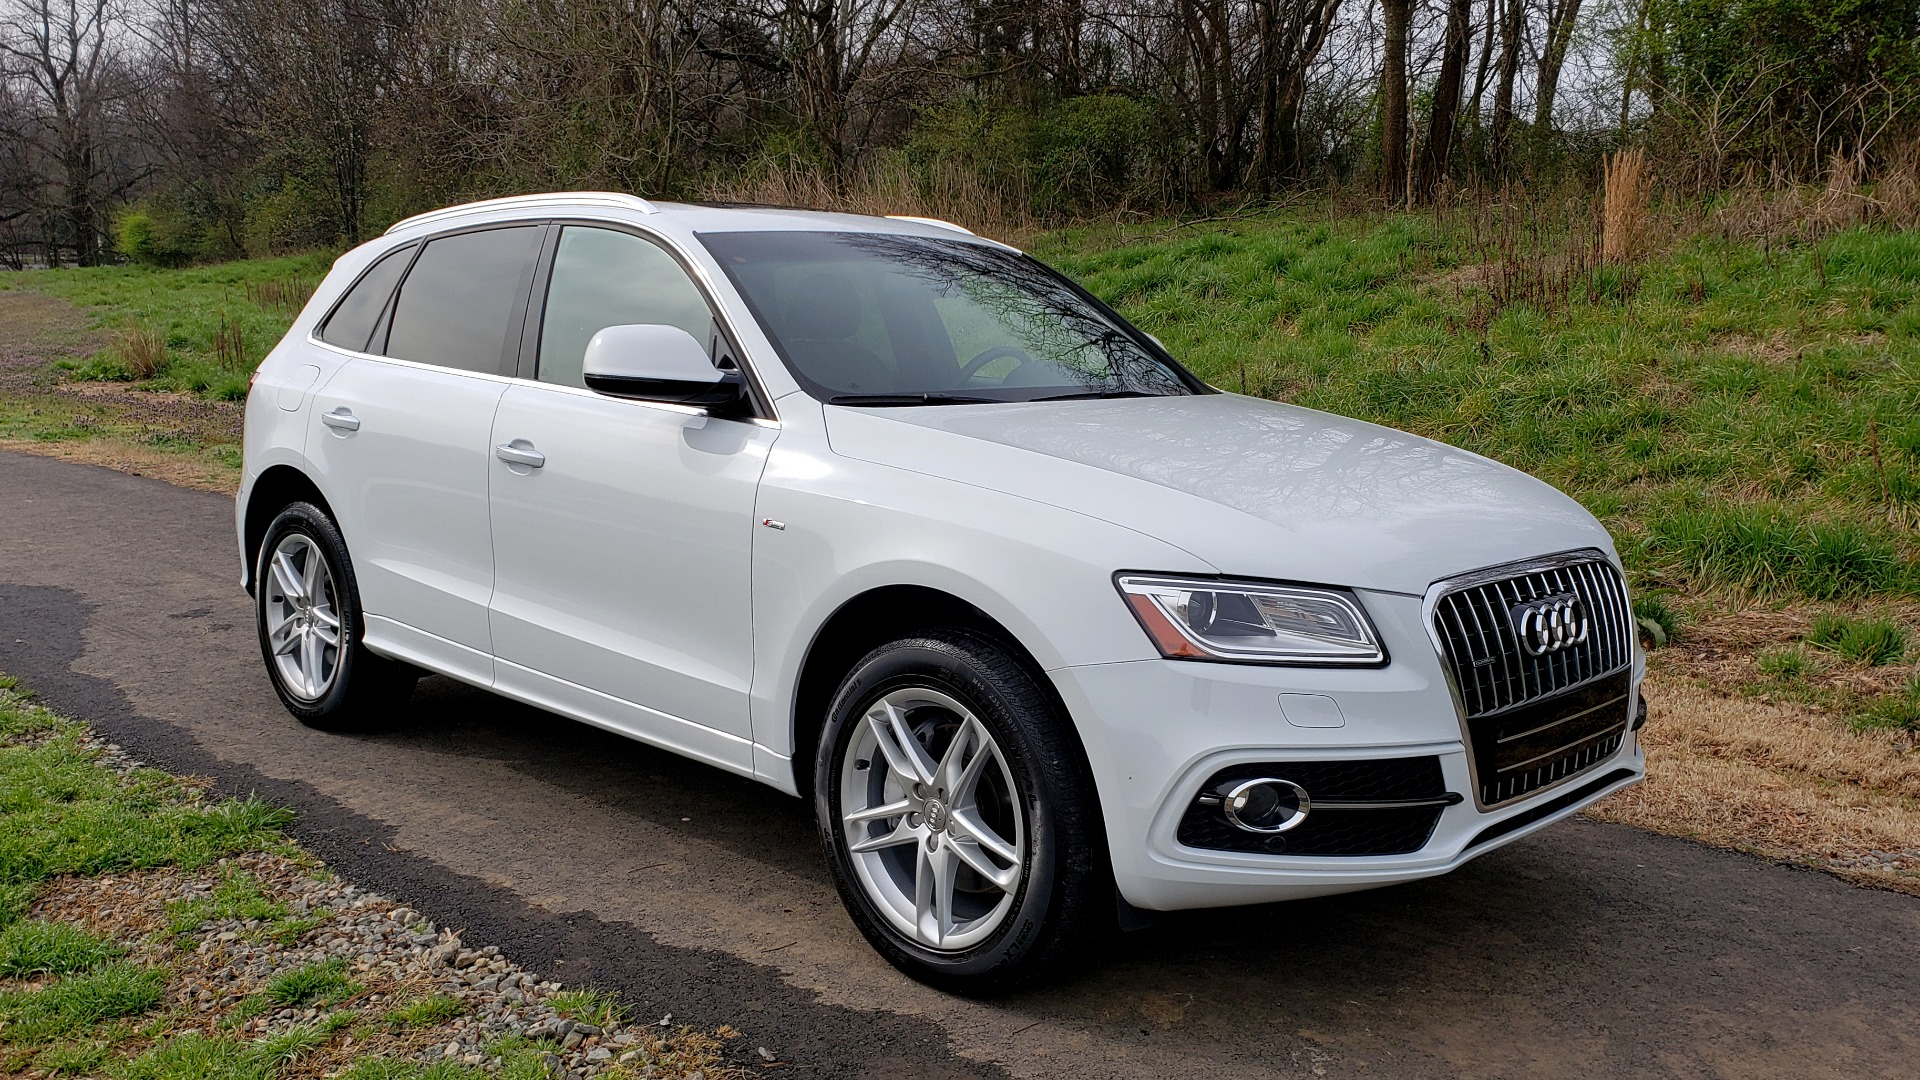 Used 2017 Audi Q5 PREMIUM PLUS / TECH / NAV / SUNROOF / REARVIEW for sale Sold at Formula Imports in Charlotte NC 28227 4